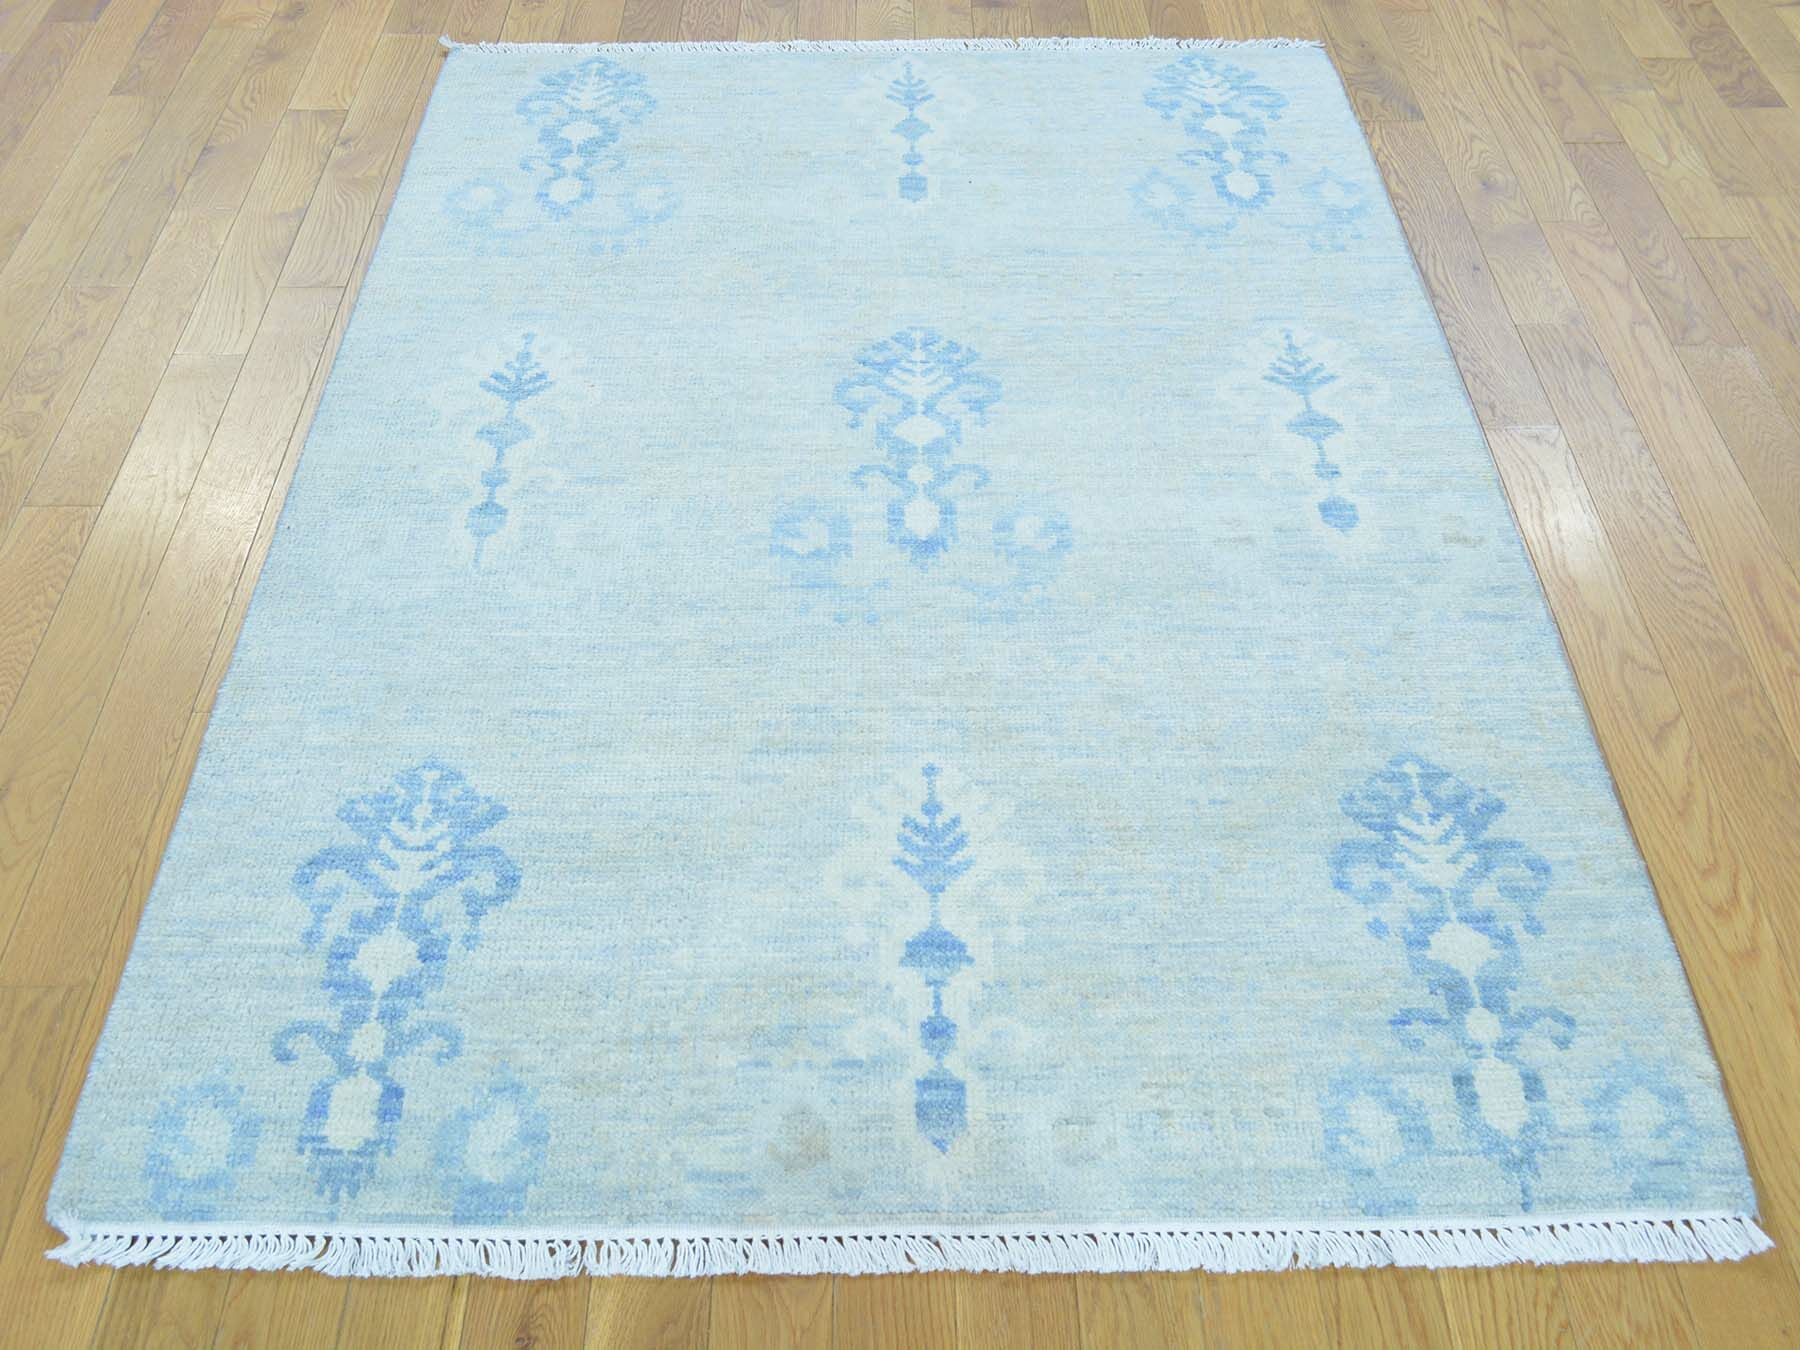 One-of-a-Kind Blythdale Washed Out Ikat Hand-Knotted Blue Wool Area Rug